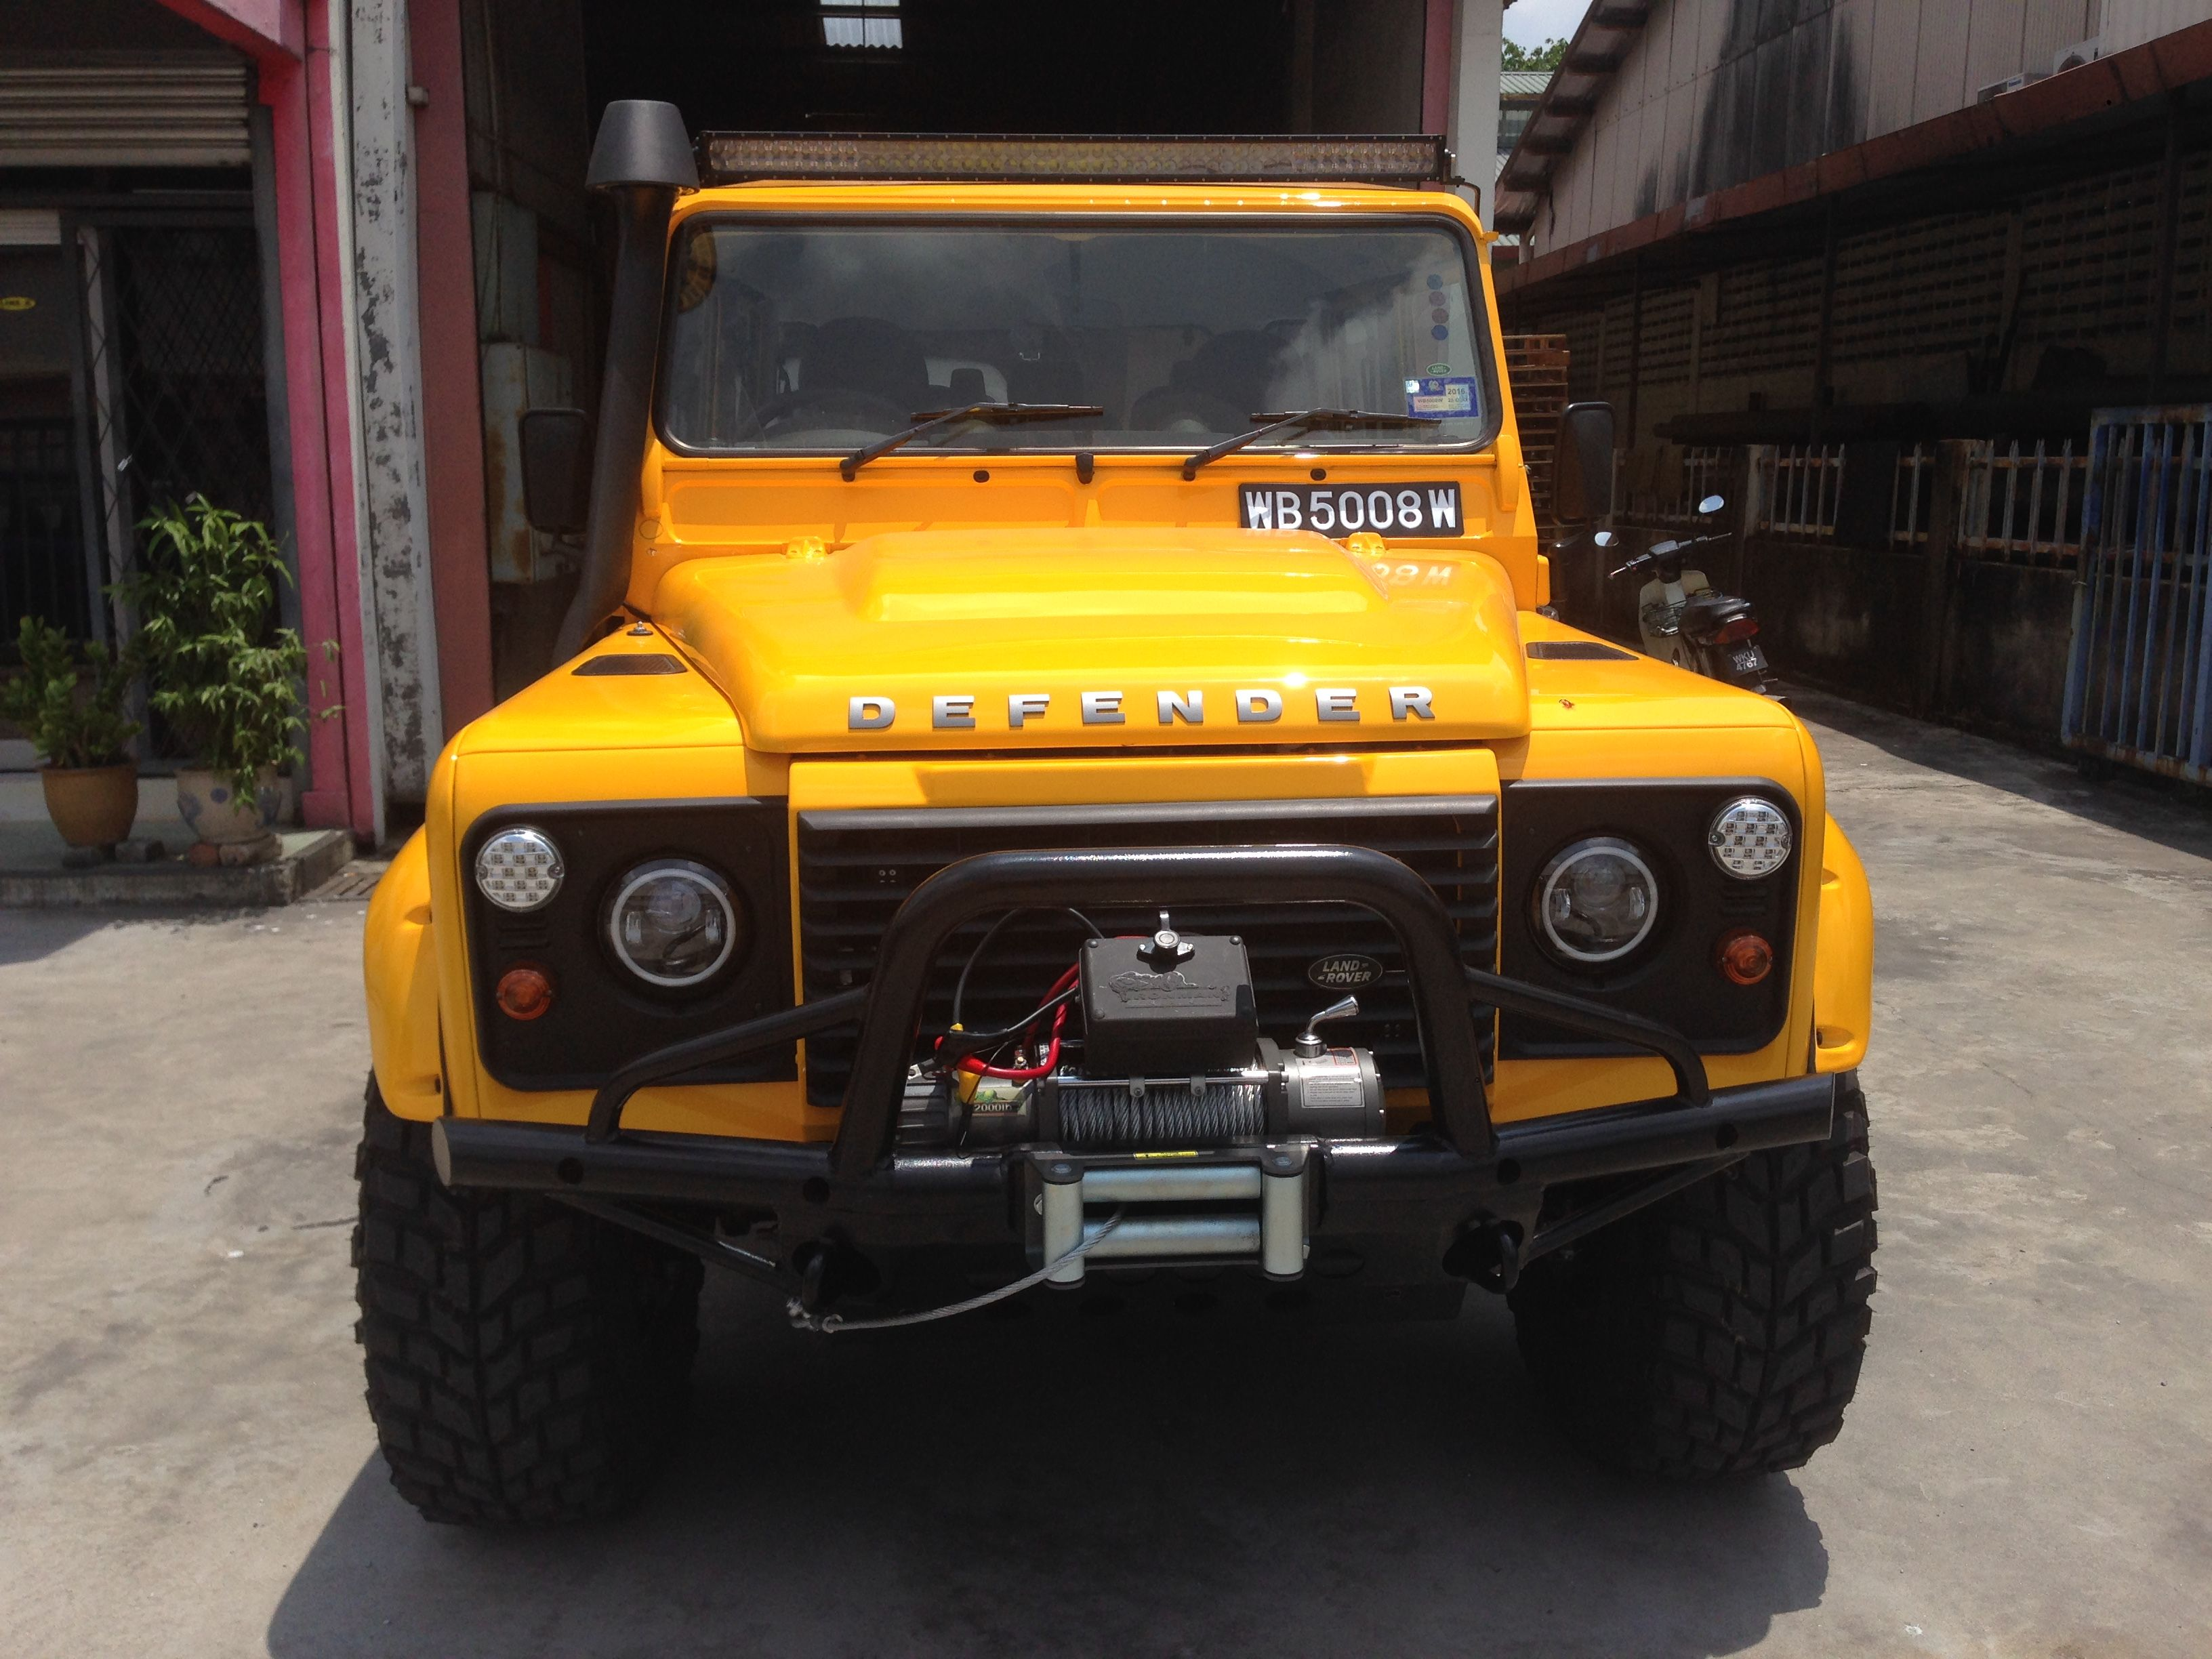 and nahej parts buy discovery land wife gearboxes all view online strudel landrover rover gearbox series name toaster boy of defender directly range actor original reconditioned s